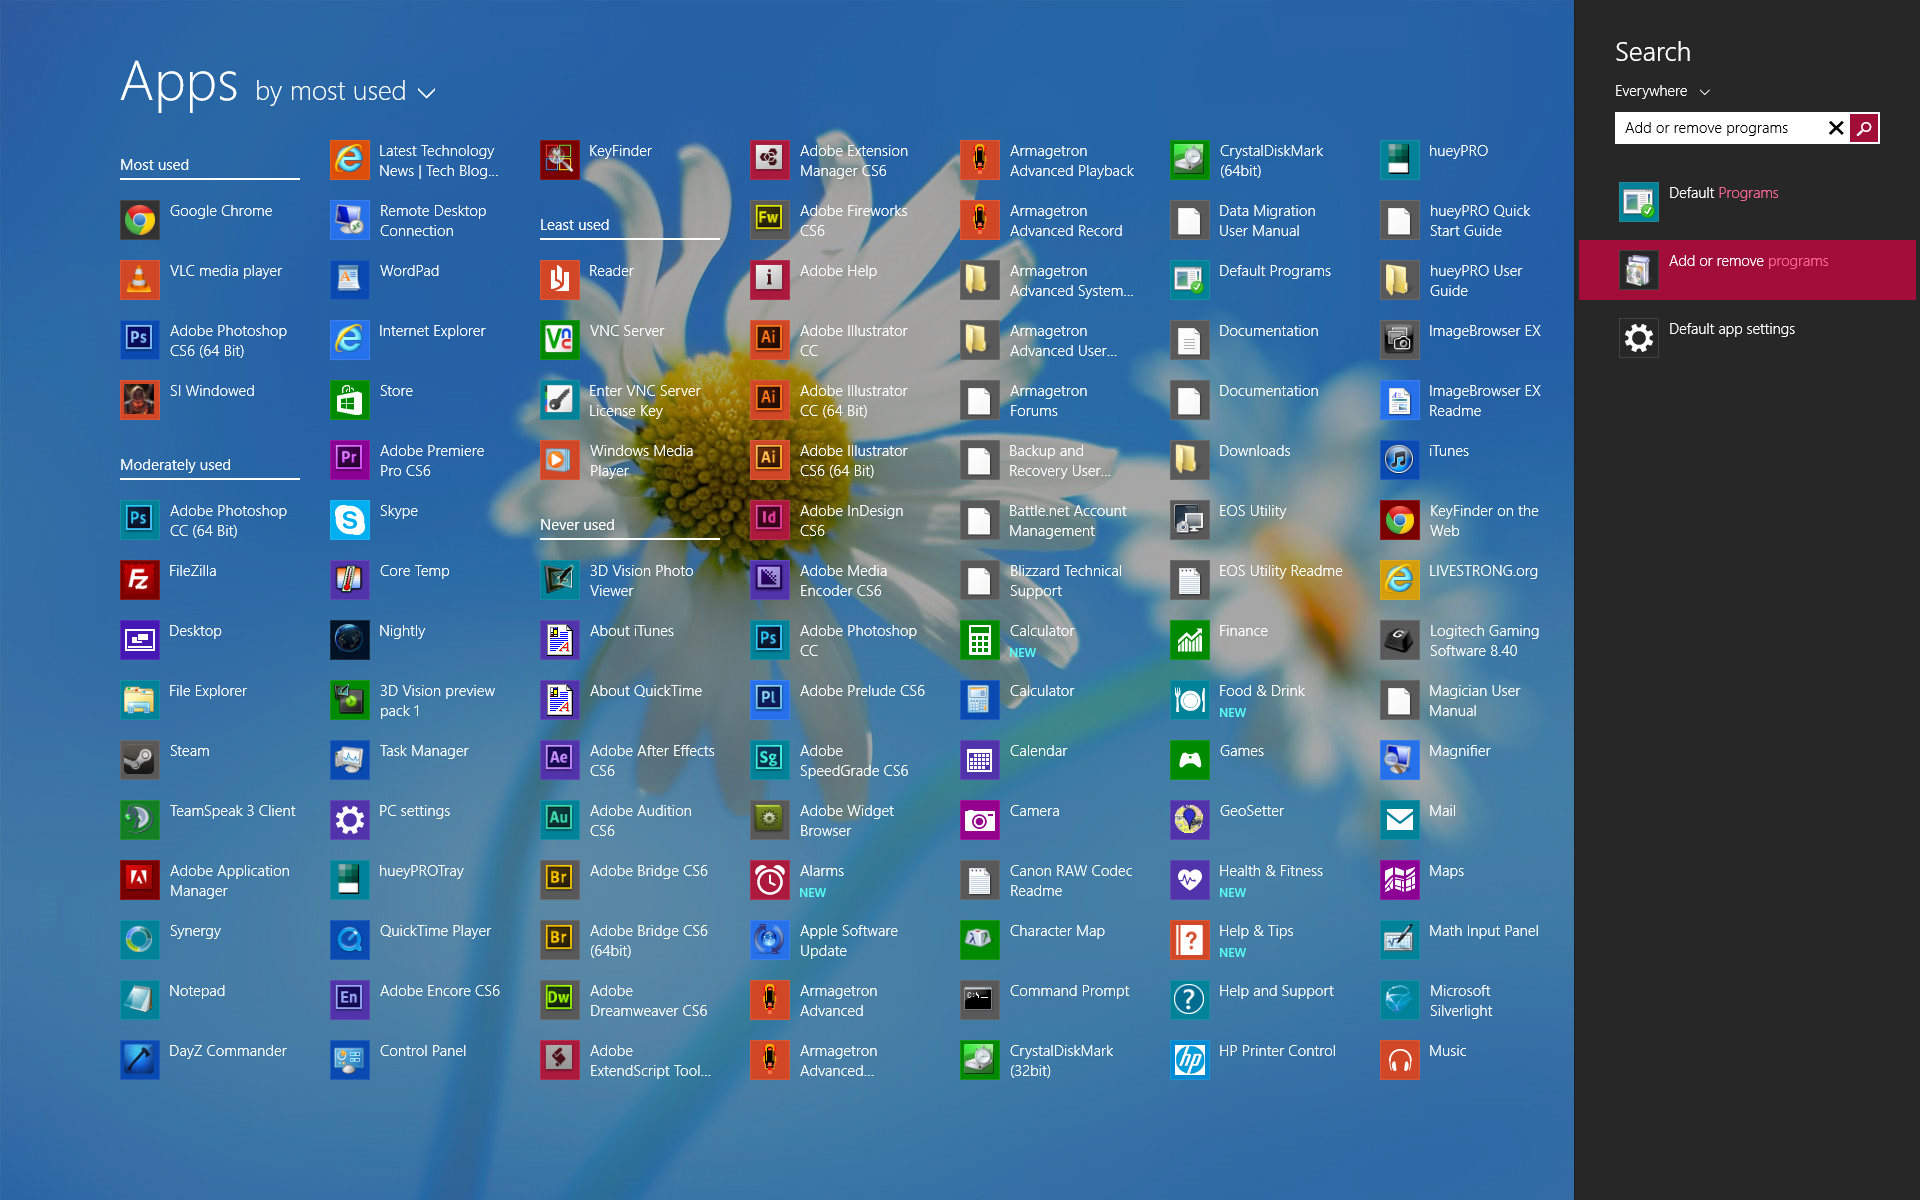 Présentation de la page Applications sous Windows 8.1 de Microsoft